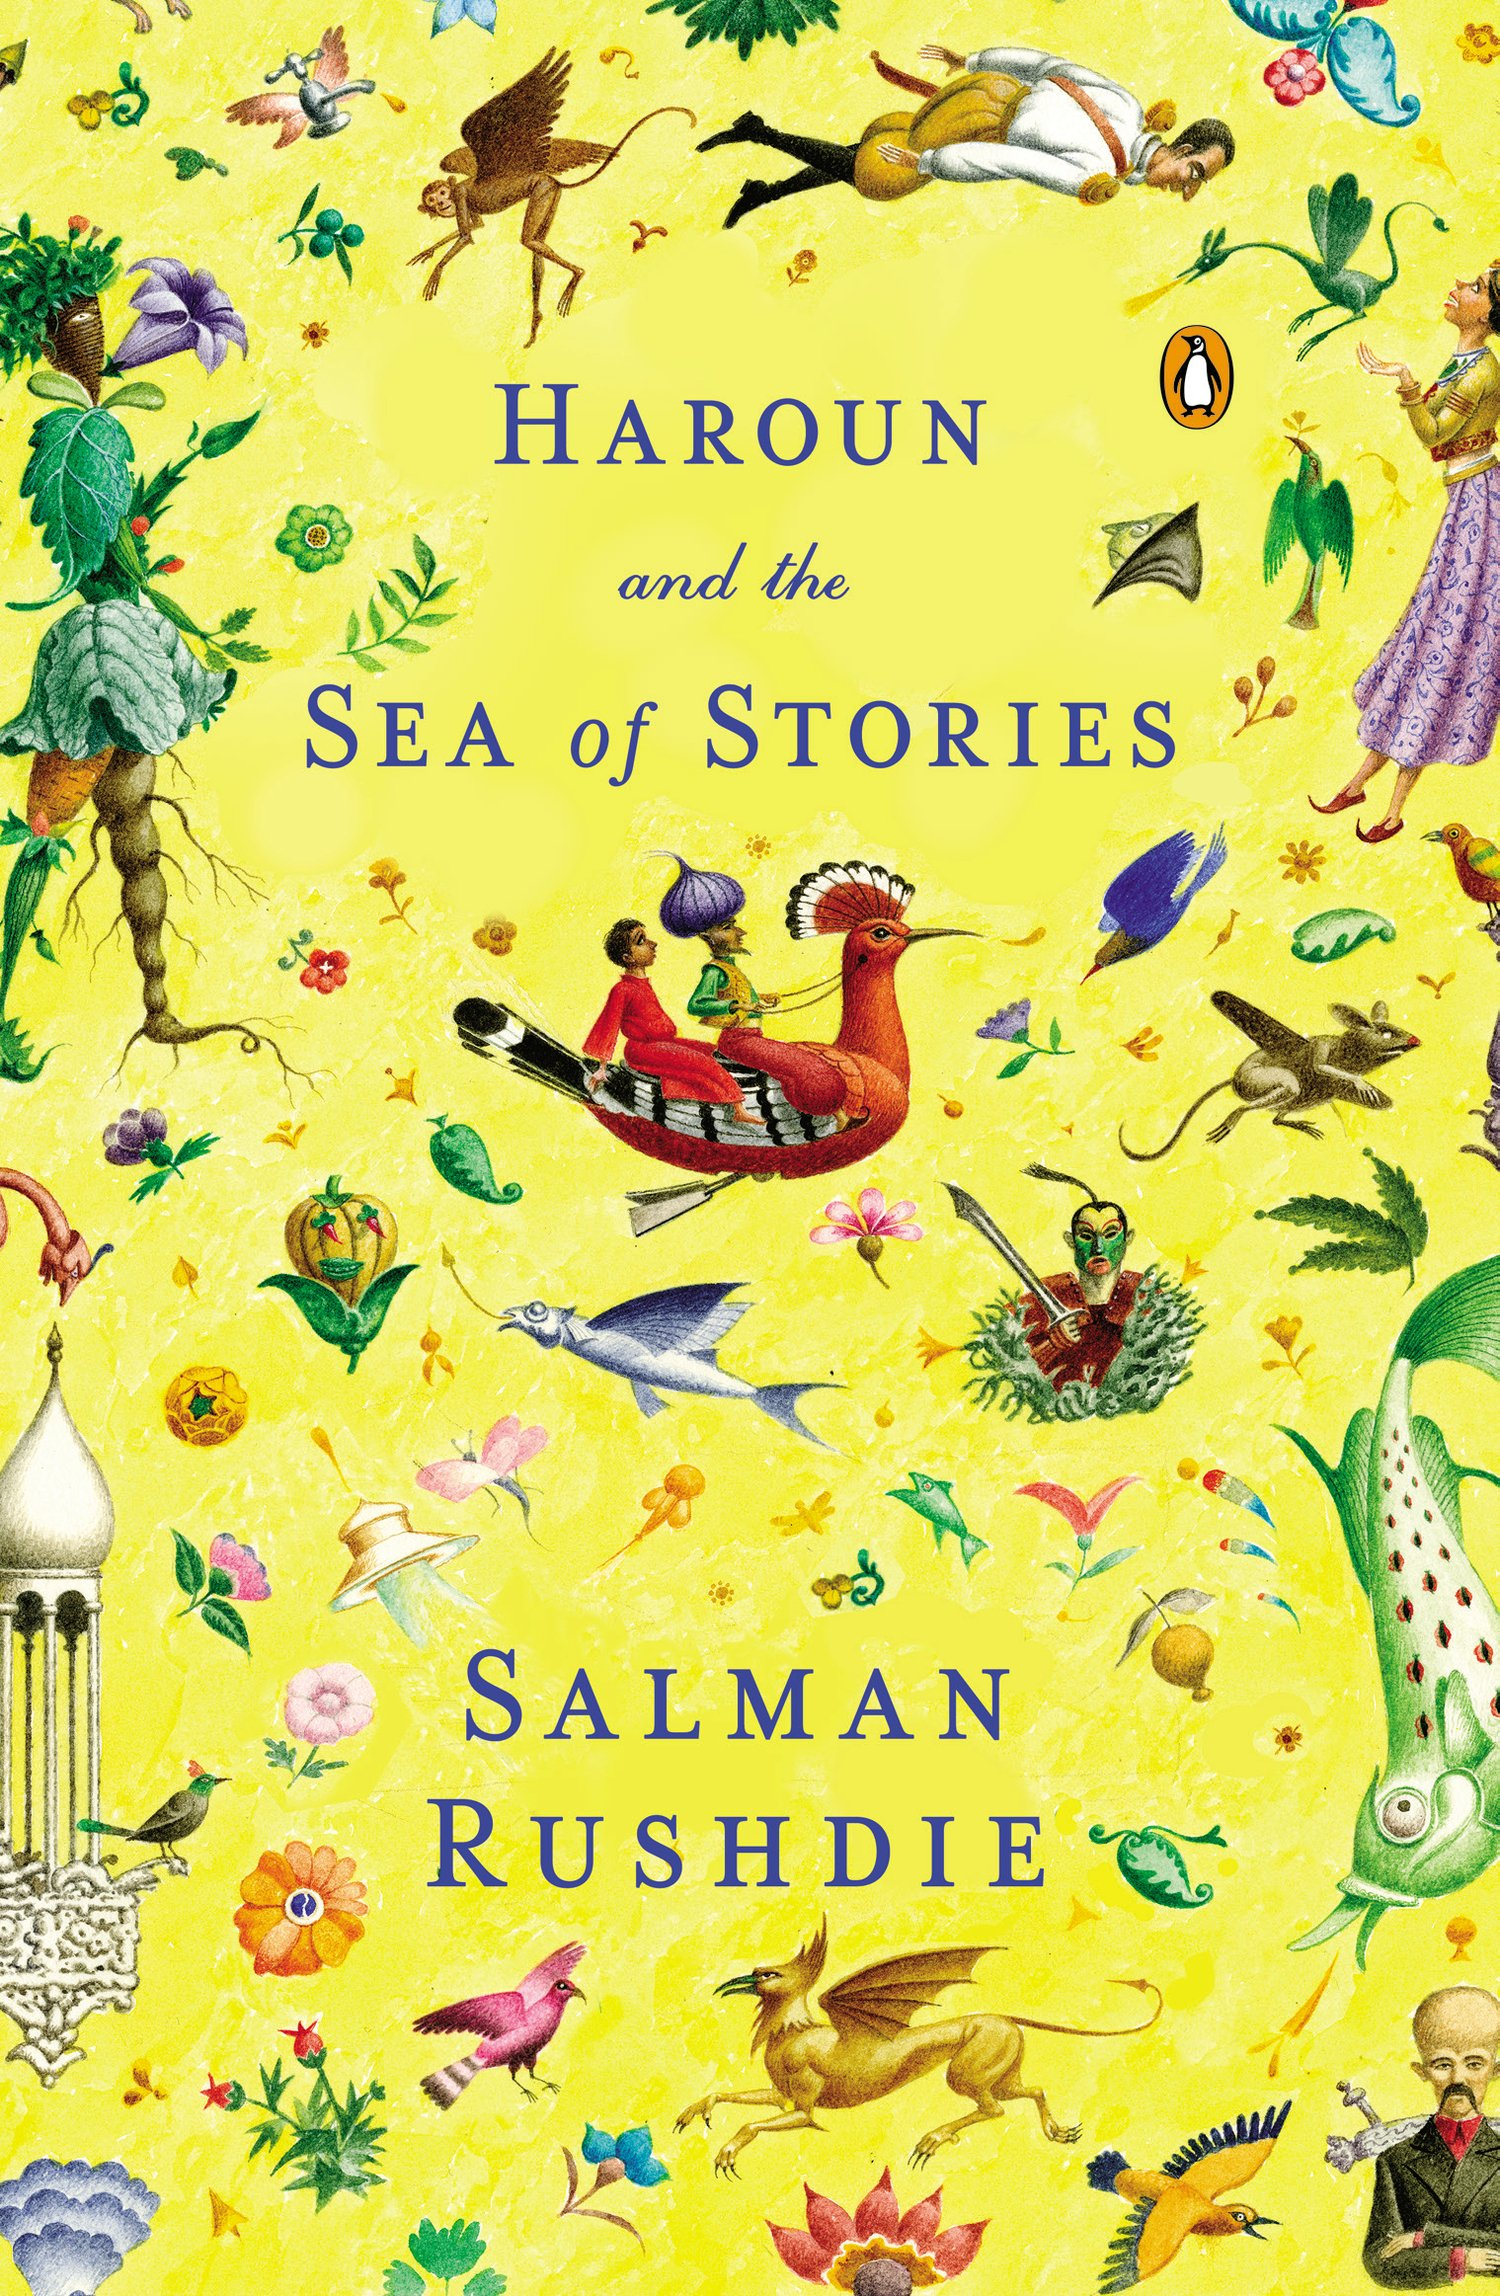 buy haroun and the sea of stories book online at low prices in buy haroun and the sea of stories book online at low prices in haroun and the sea of stories reviews ratings in